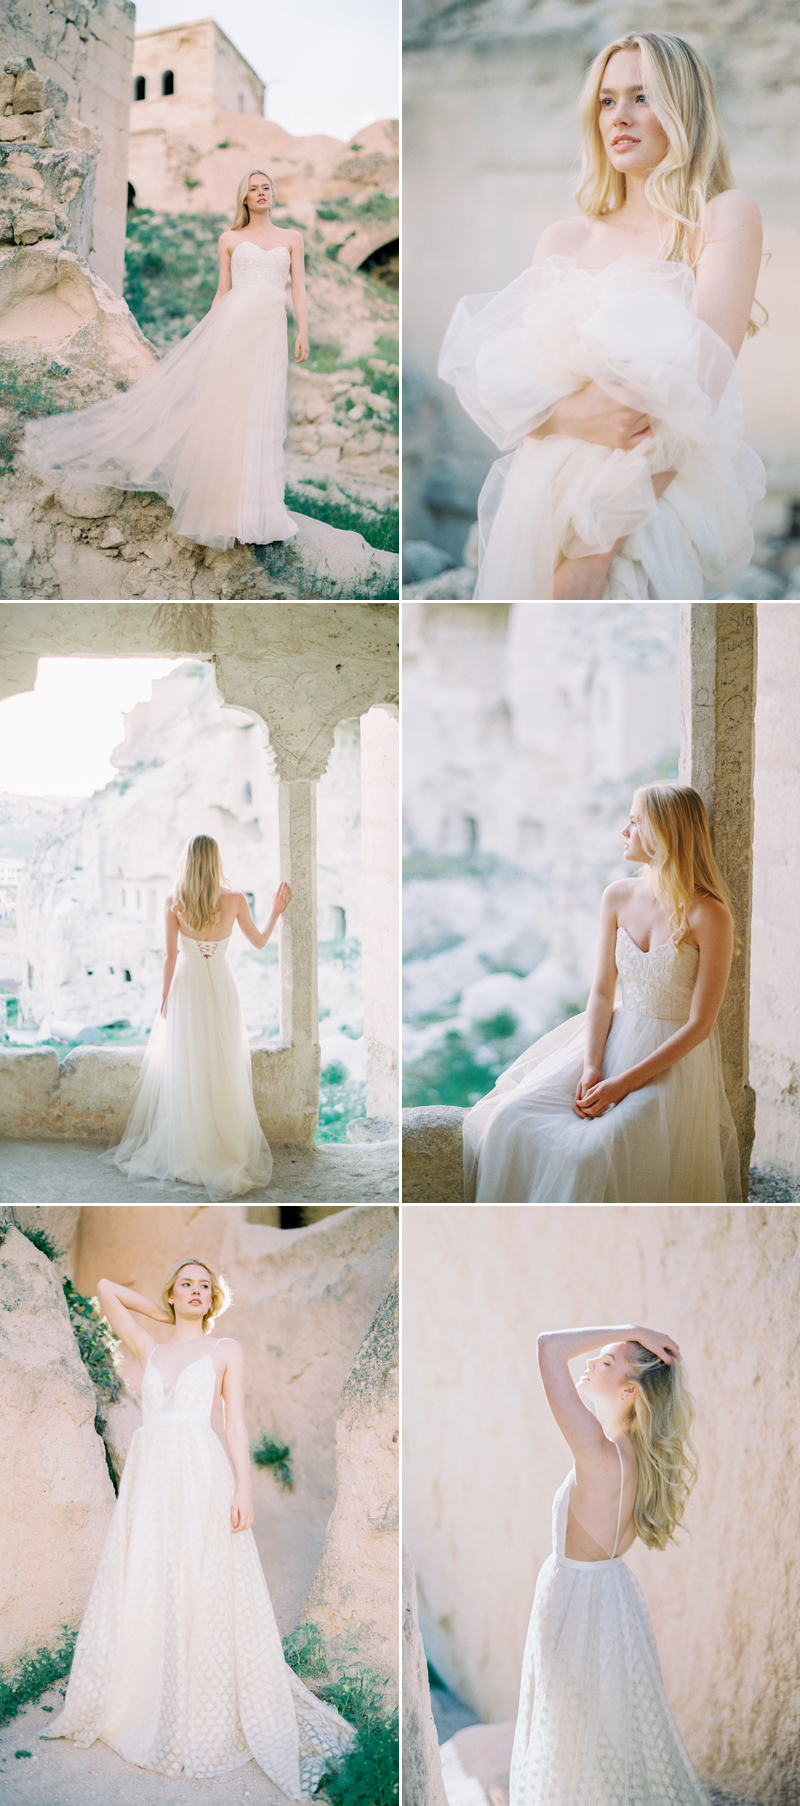 ac01a9316e Truvelle 2018 Collection Introduces Effortlessly Beautiful Wedding ...